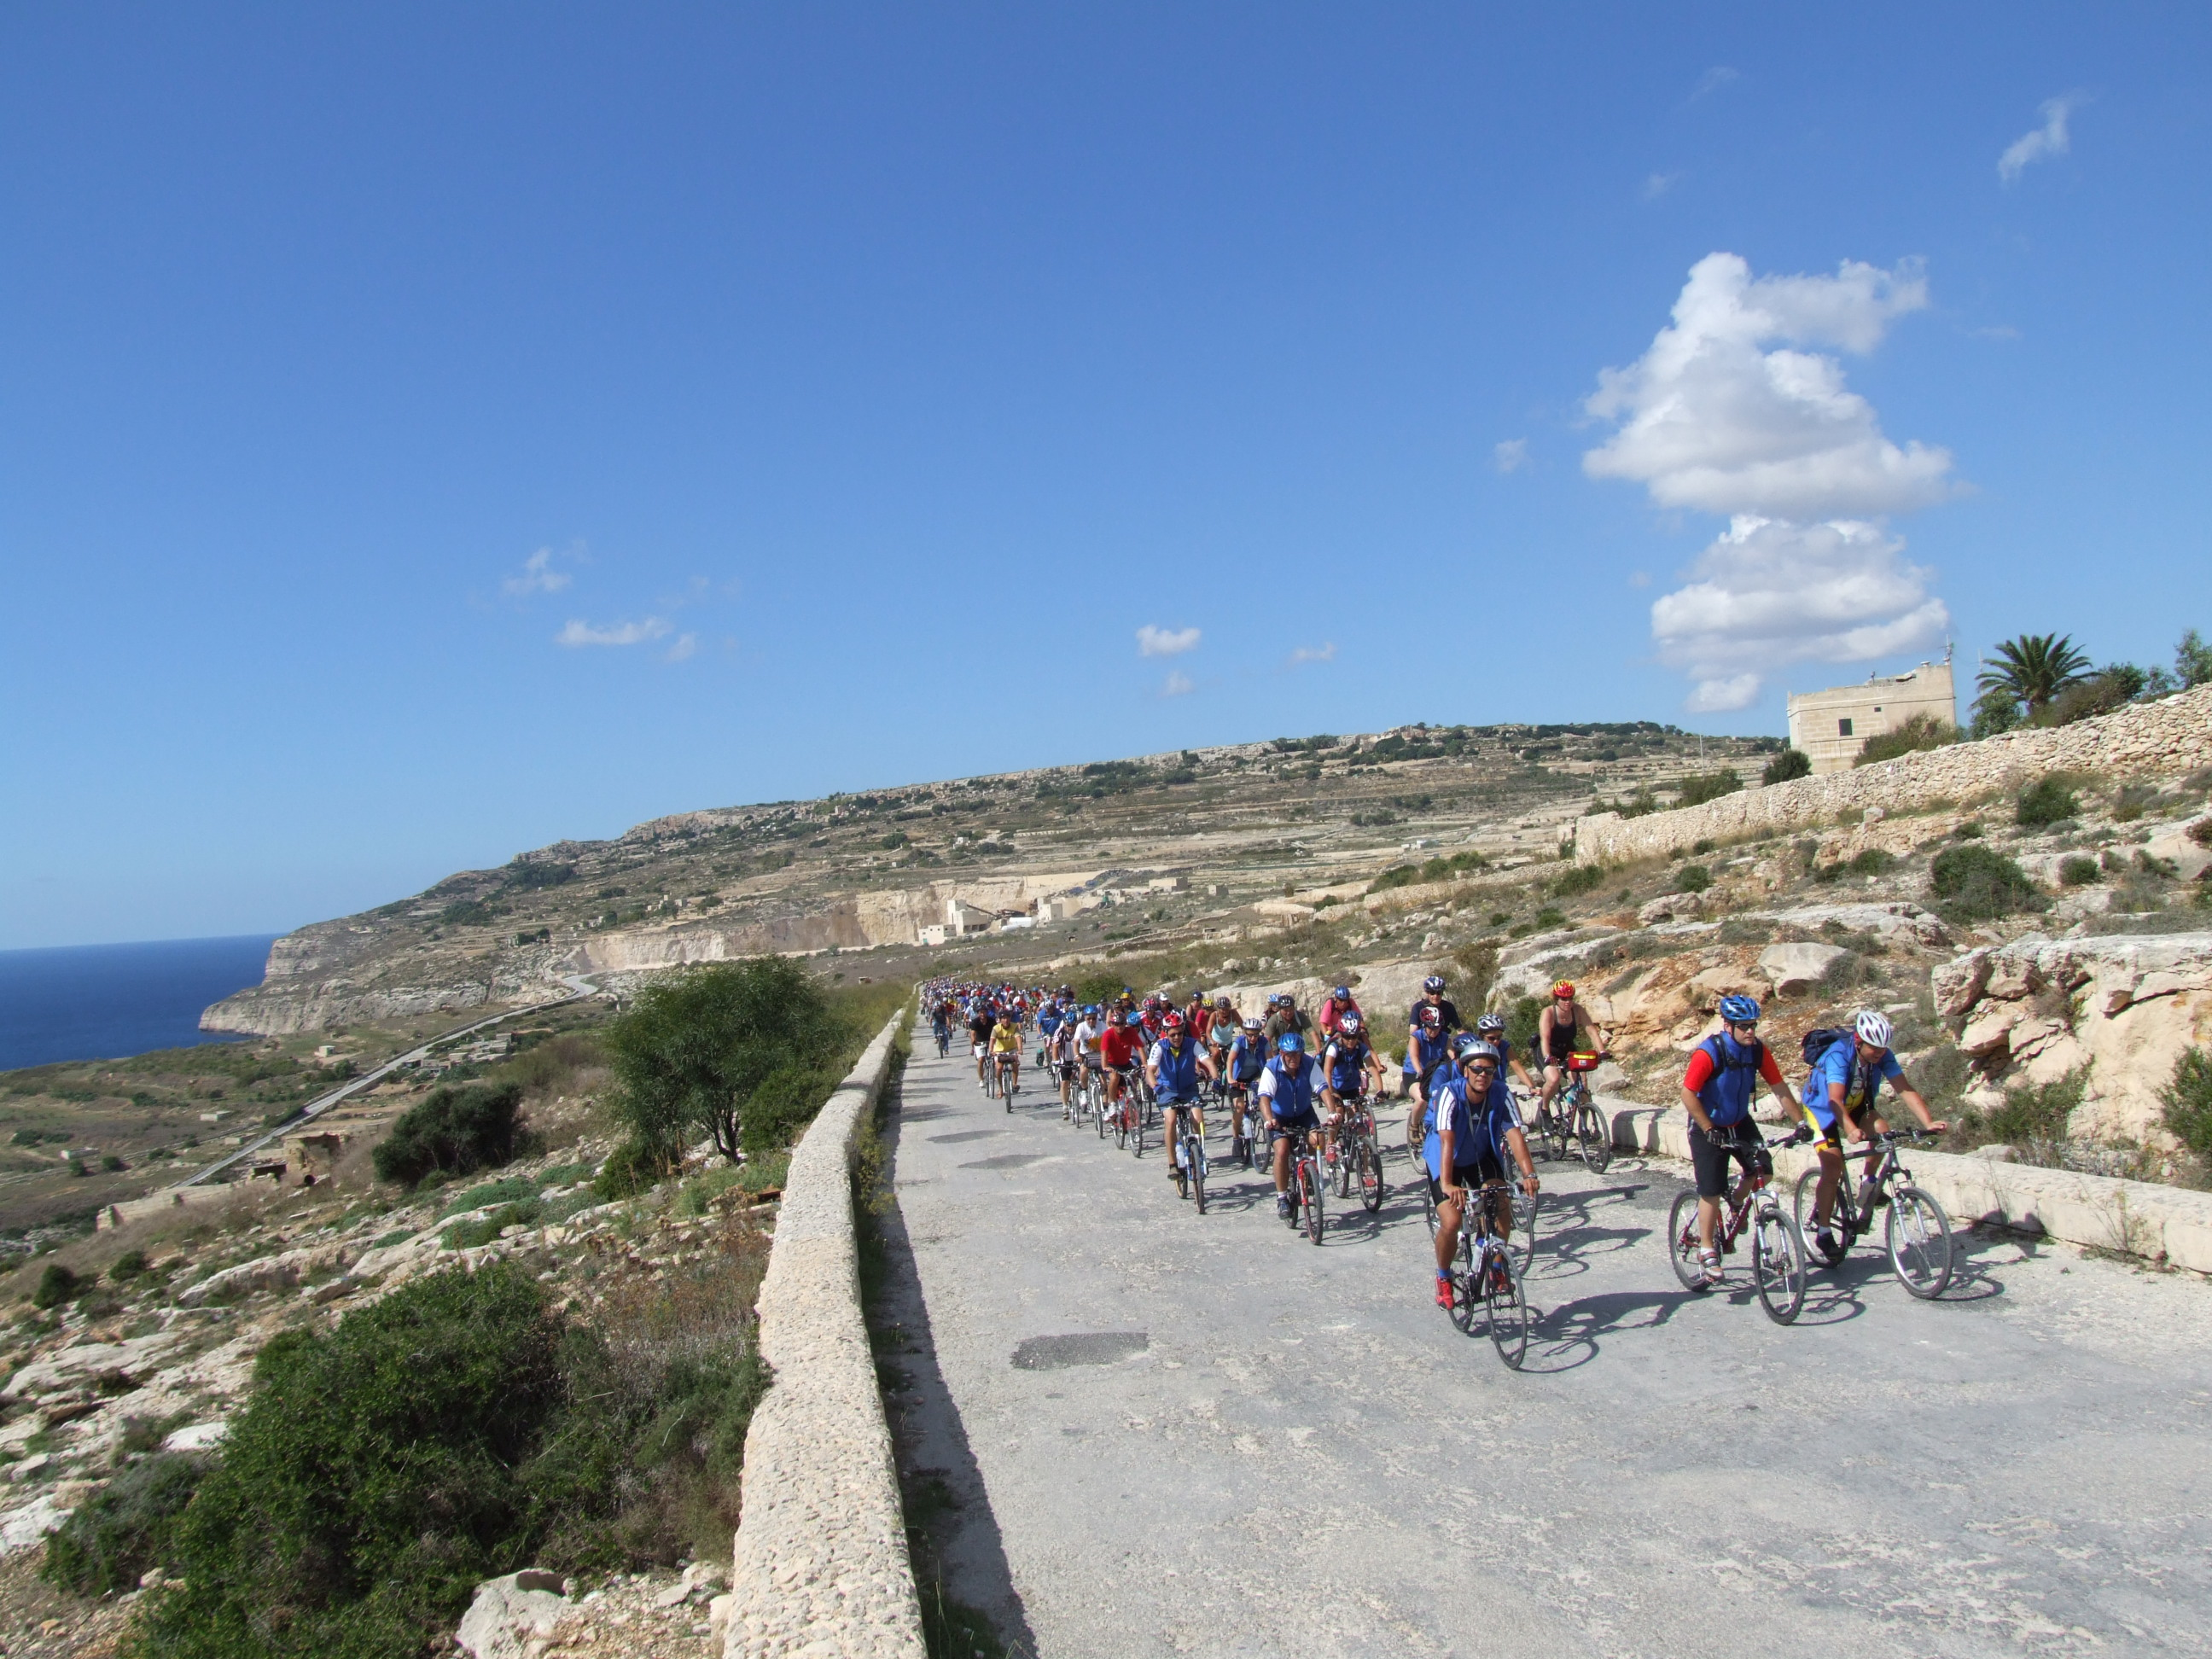 Cycle Riders In Malta